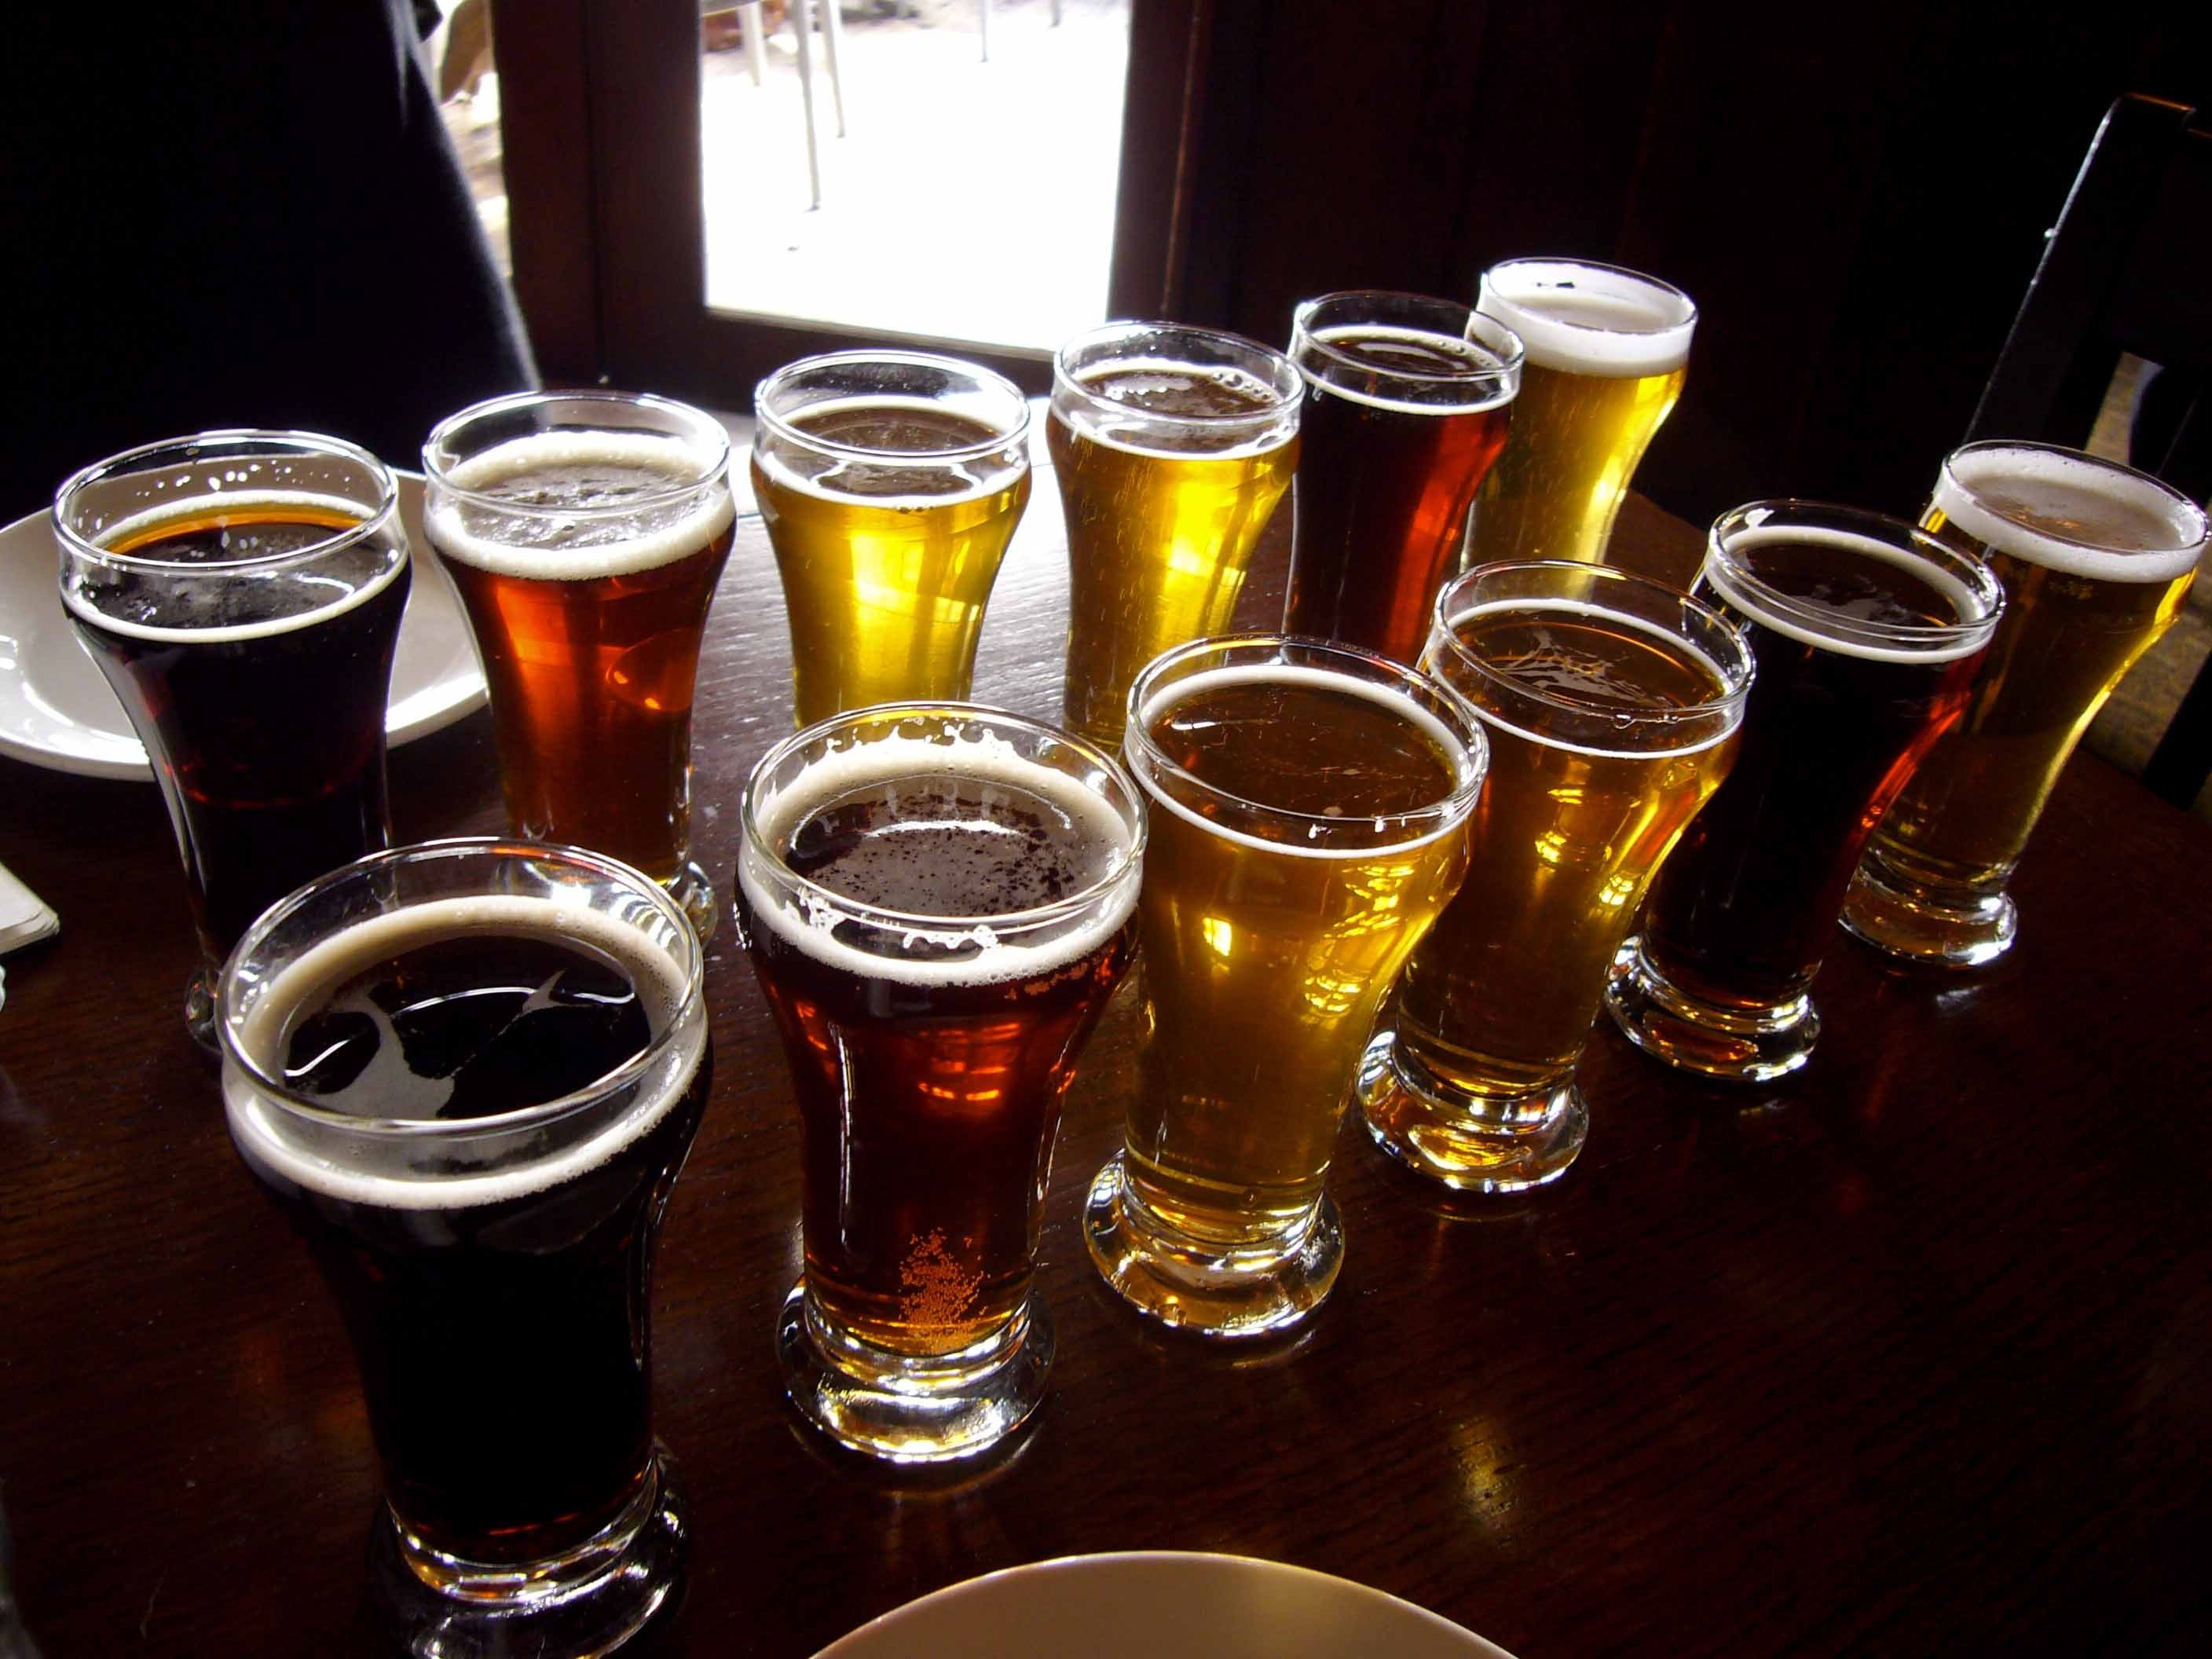 beer home brewer competition beardslee public house bothell